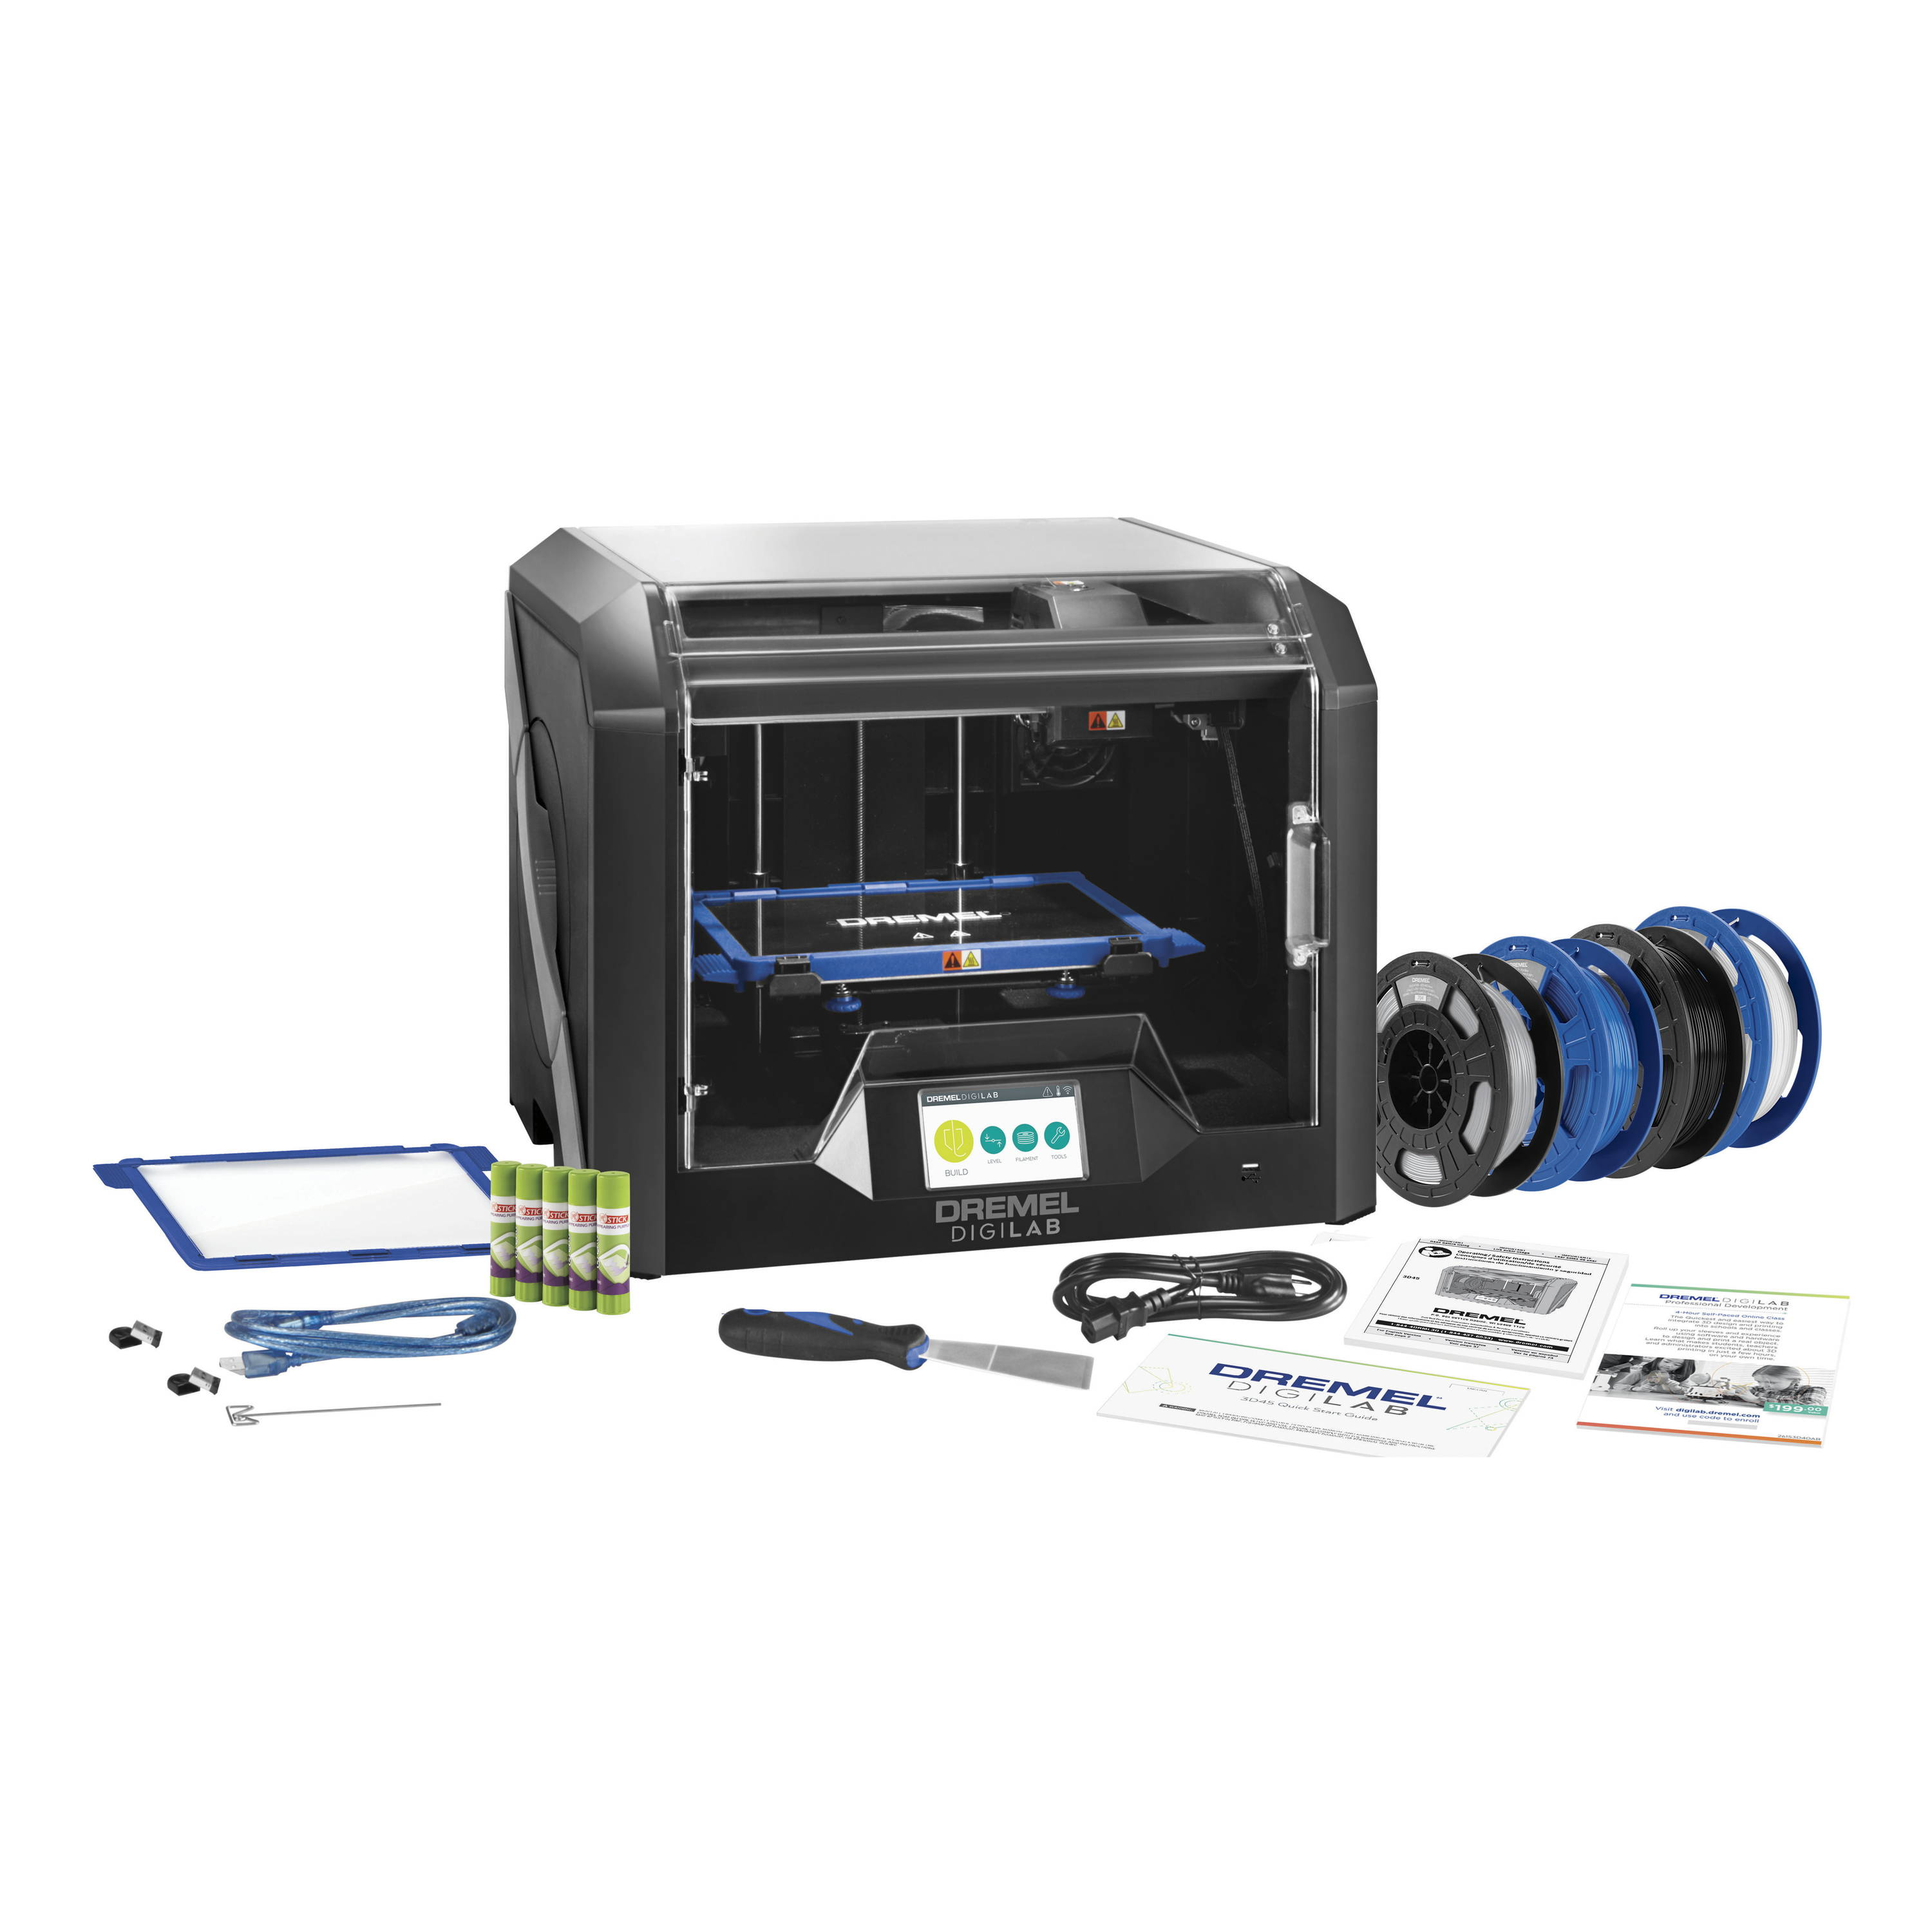 Image of 3D45-EDU 3D printer bundle with all included contents